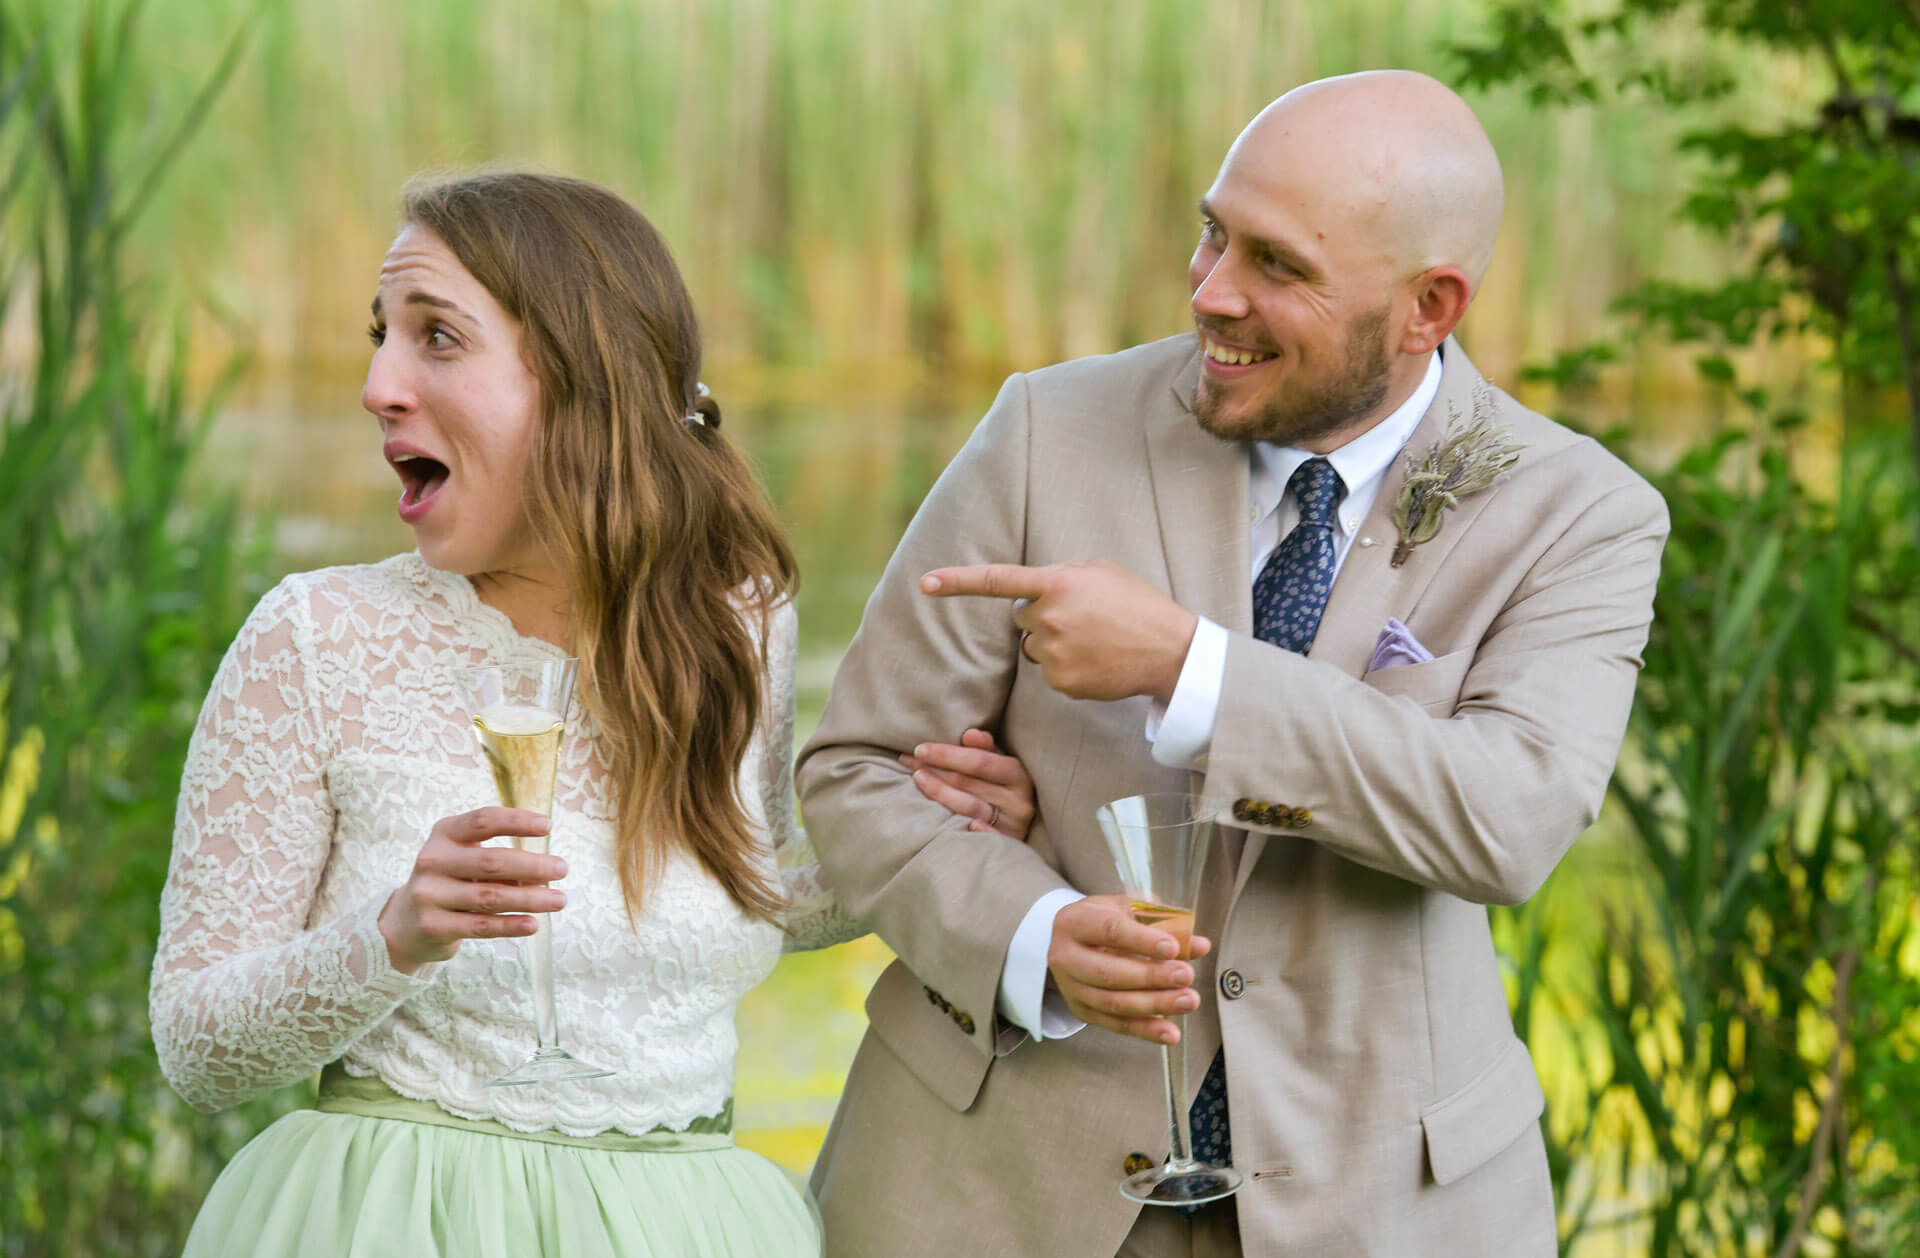 Candid wedding photography showing the bride and groom laughing during their toast in their backyard wedding in Ann Arbor, Michigan.